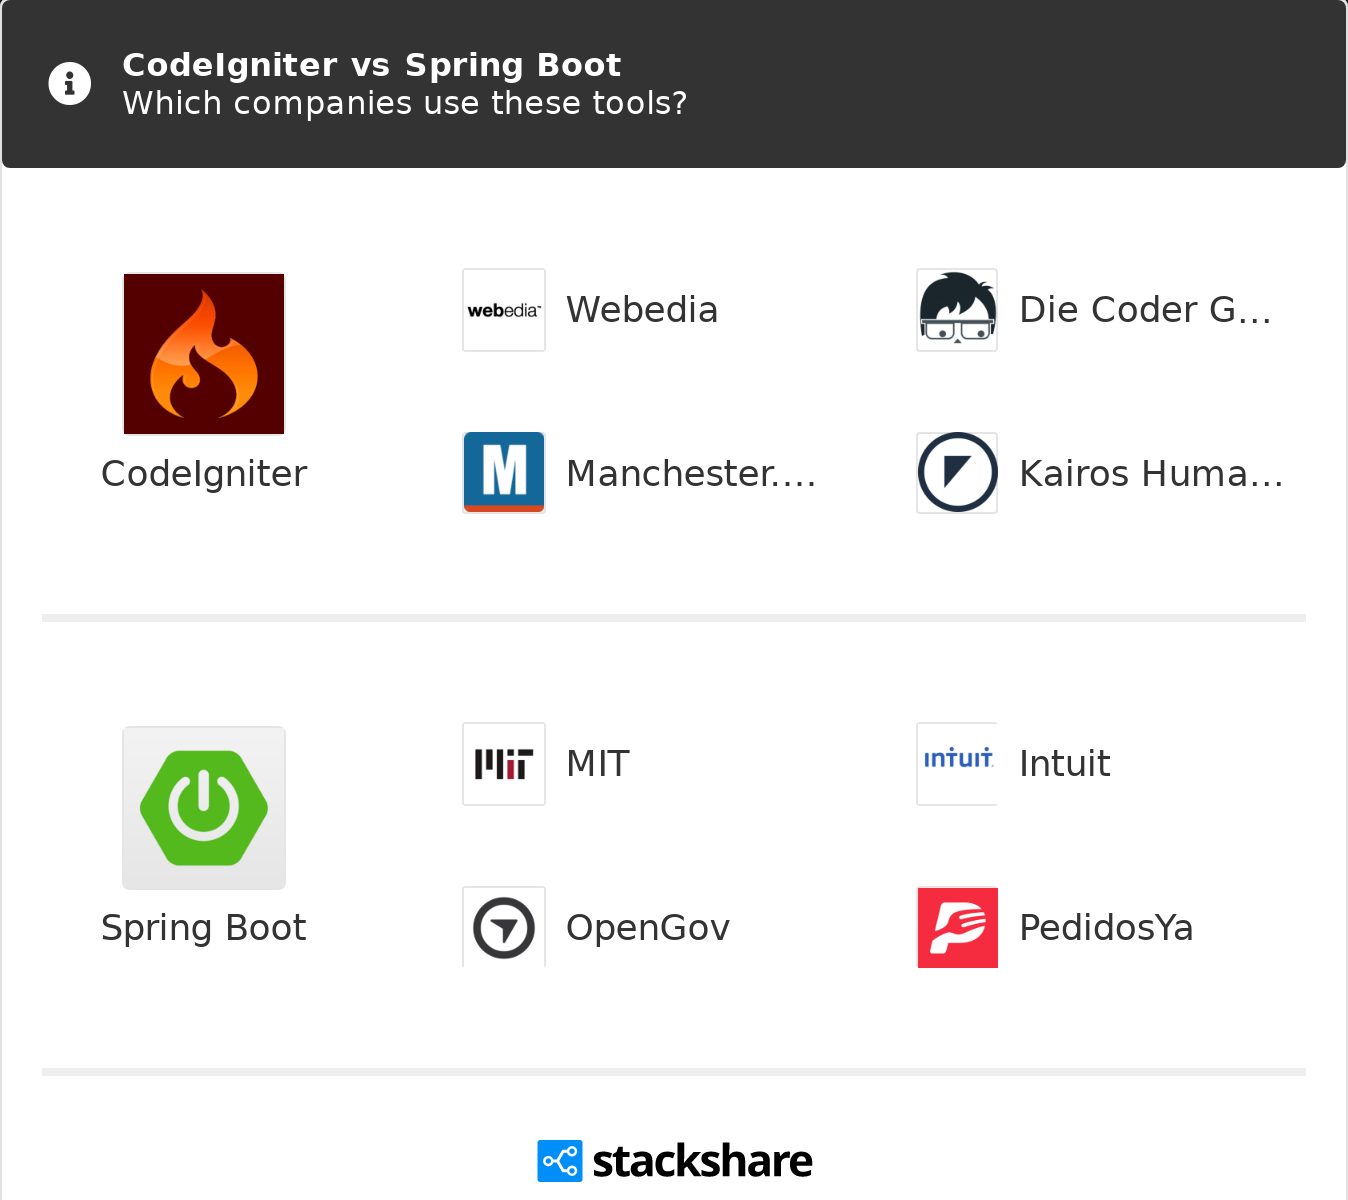 e1272f238b5a5 CodeIgniter vs Spring Boot | What are the differences?